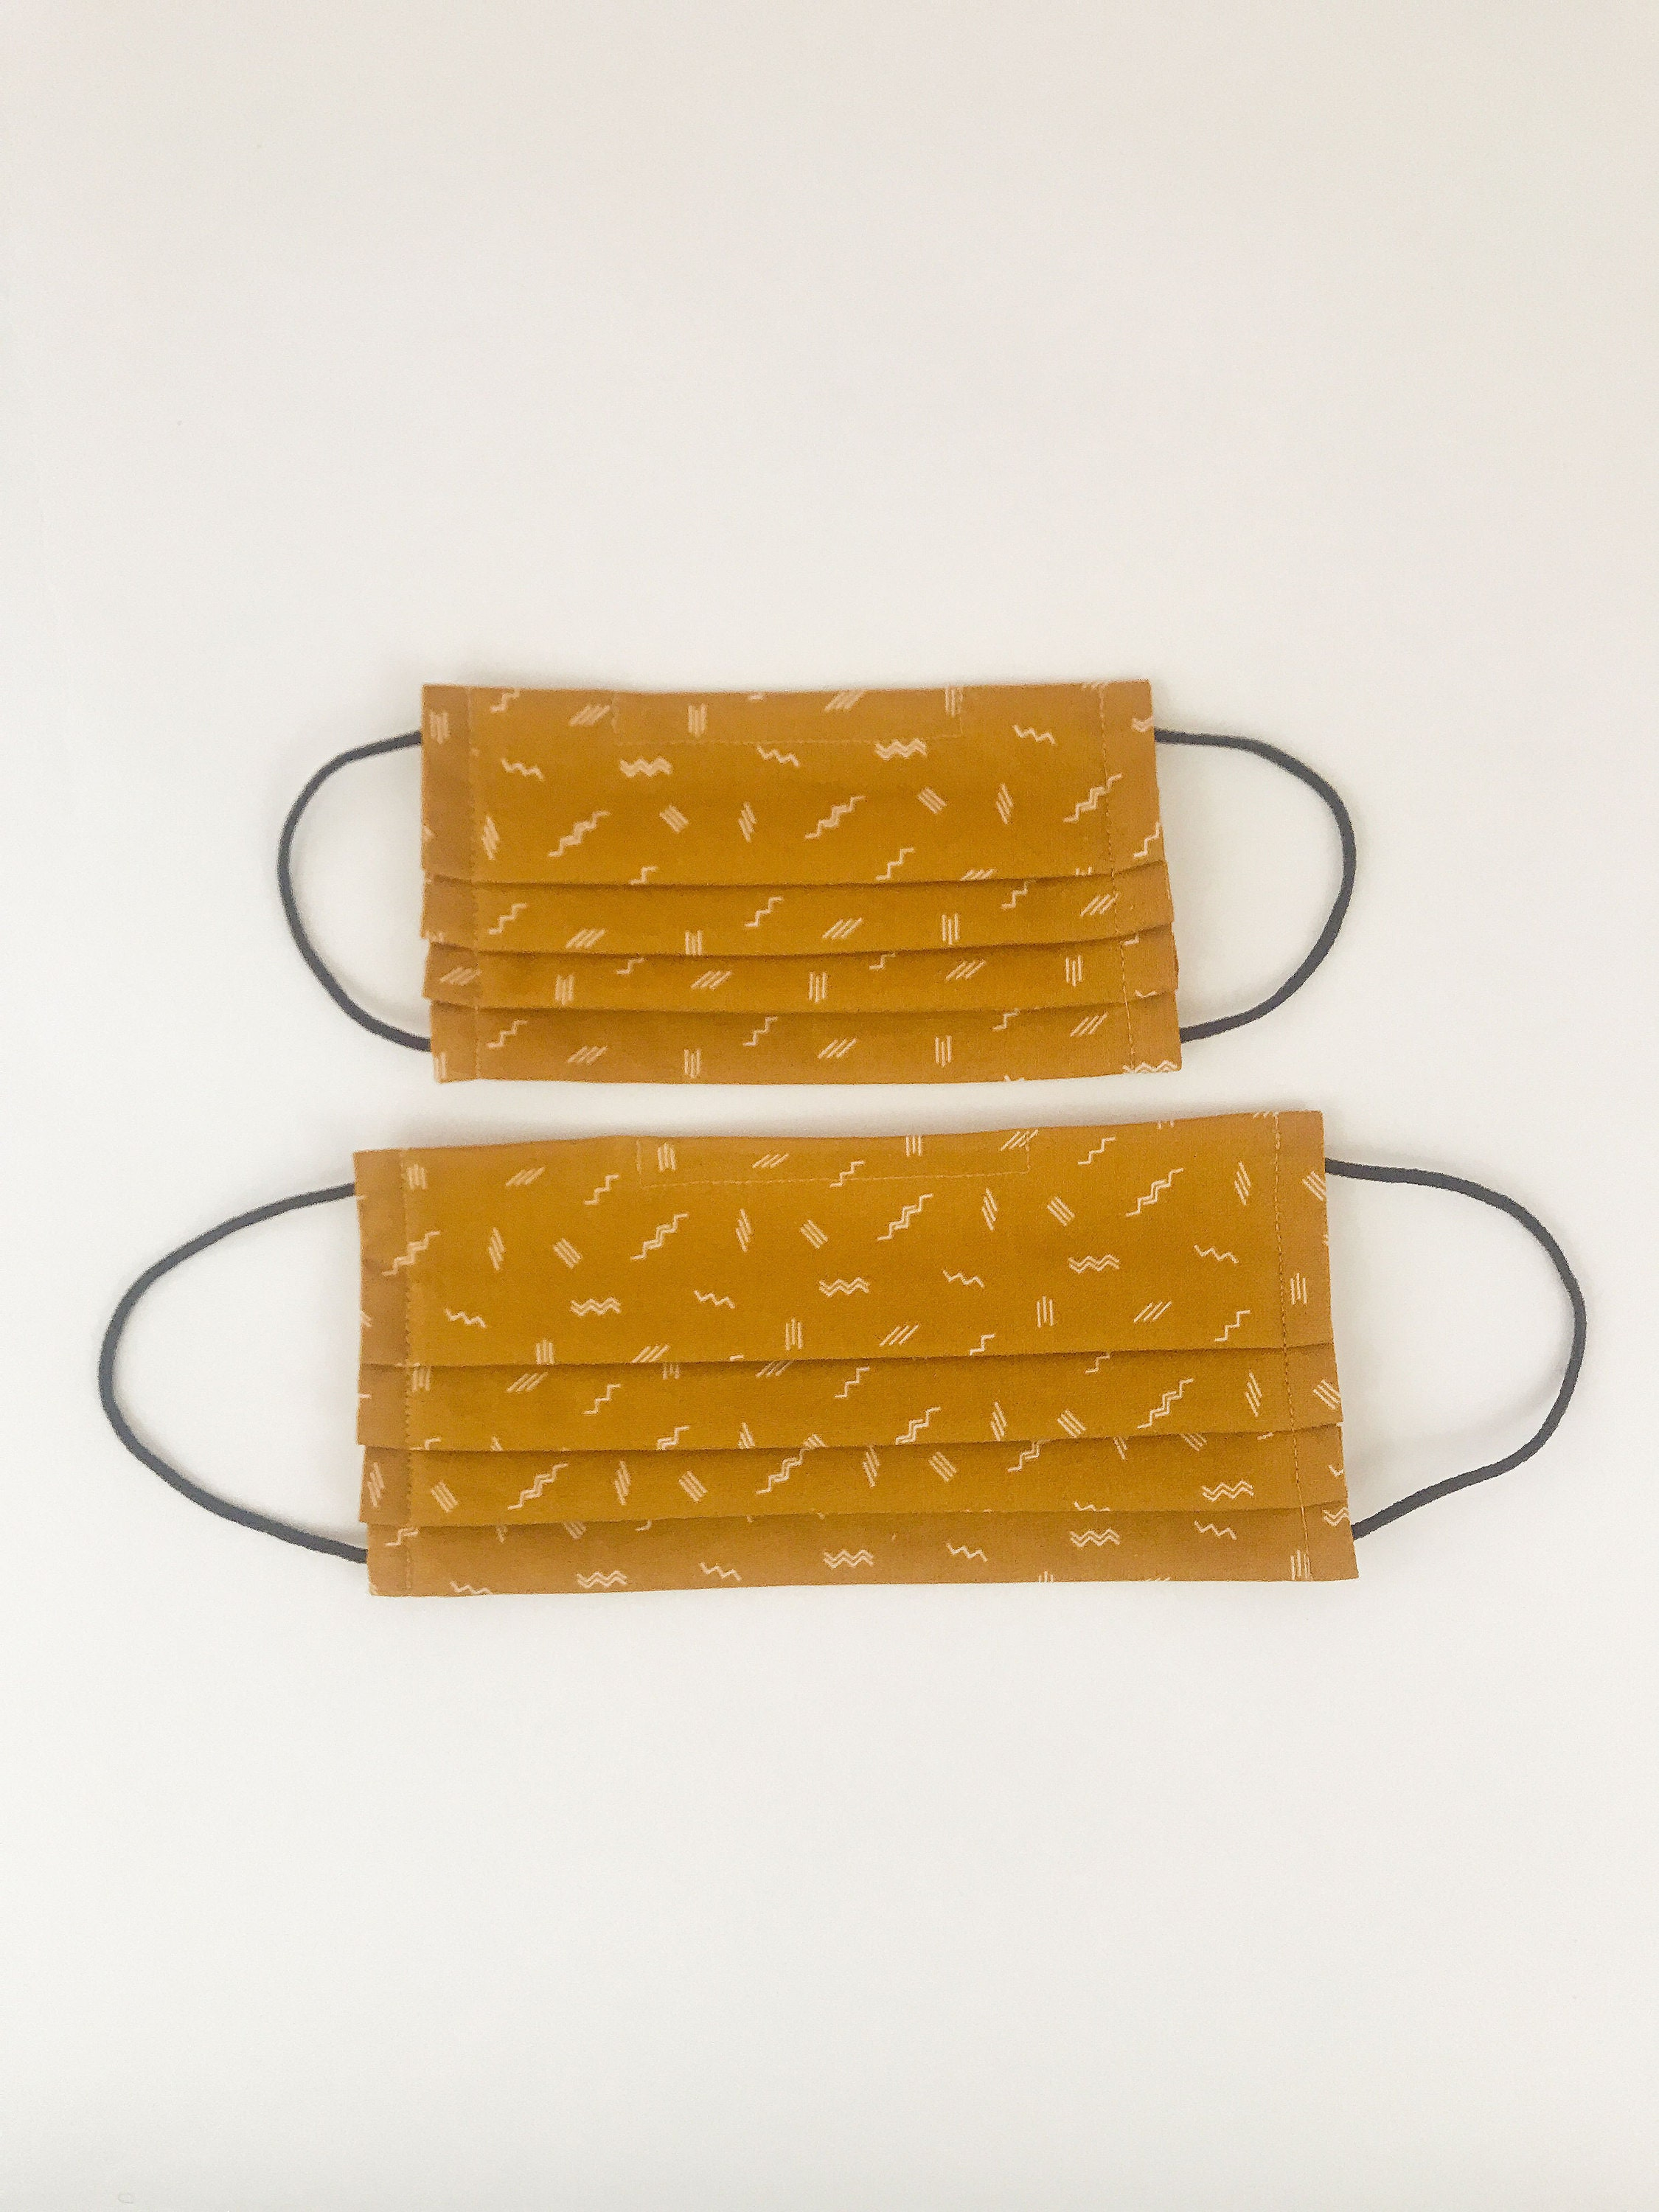 Pleated face masks for adults and children in ochre